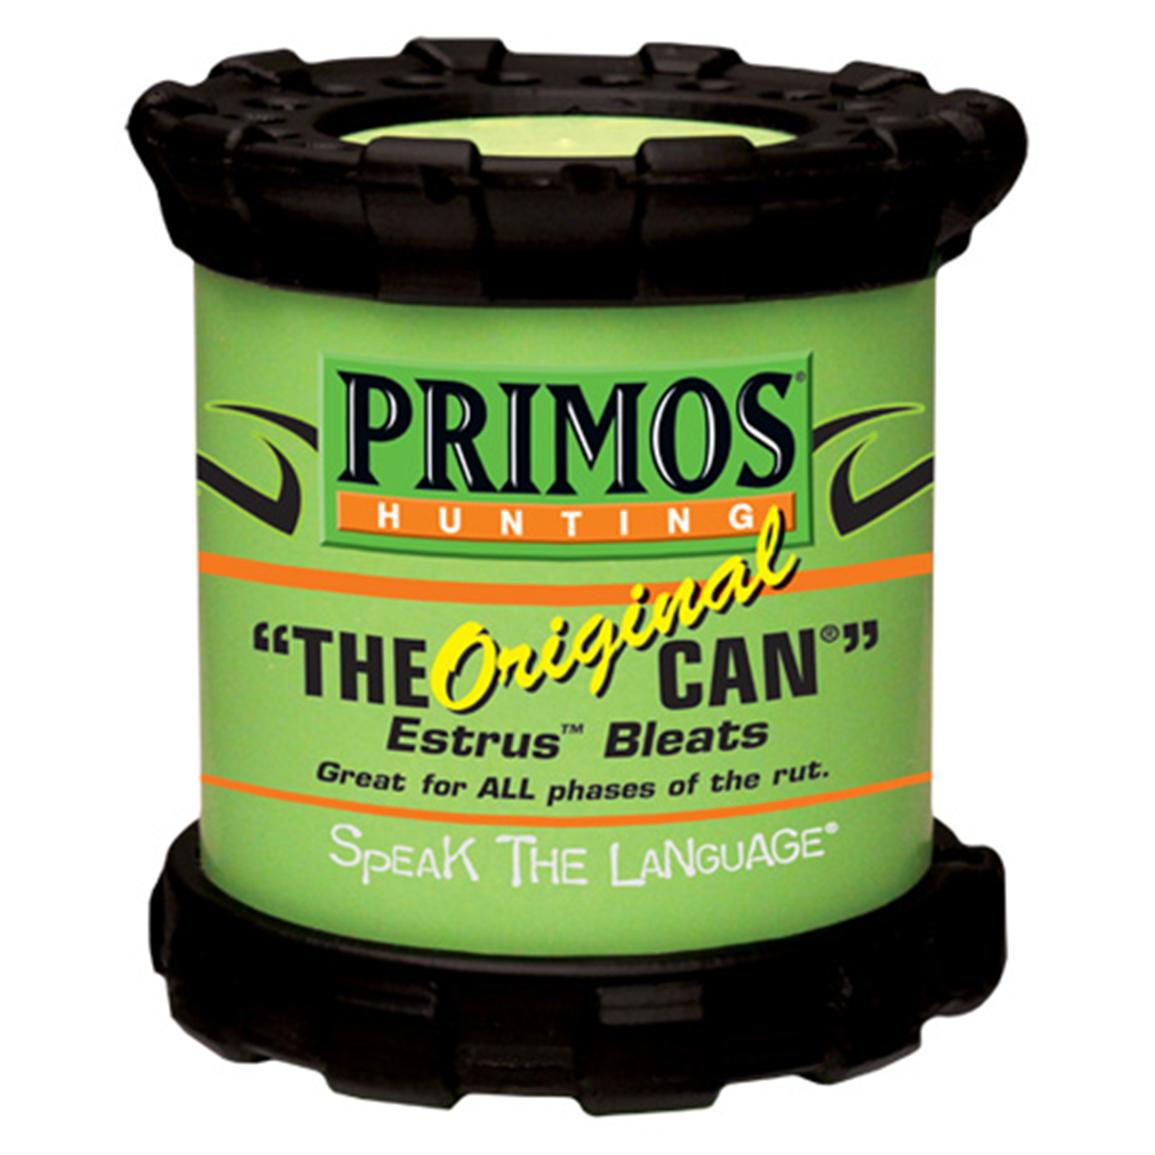 The Original Can® with True Grip from Primos®